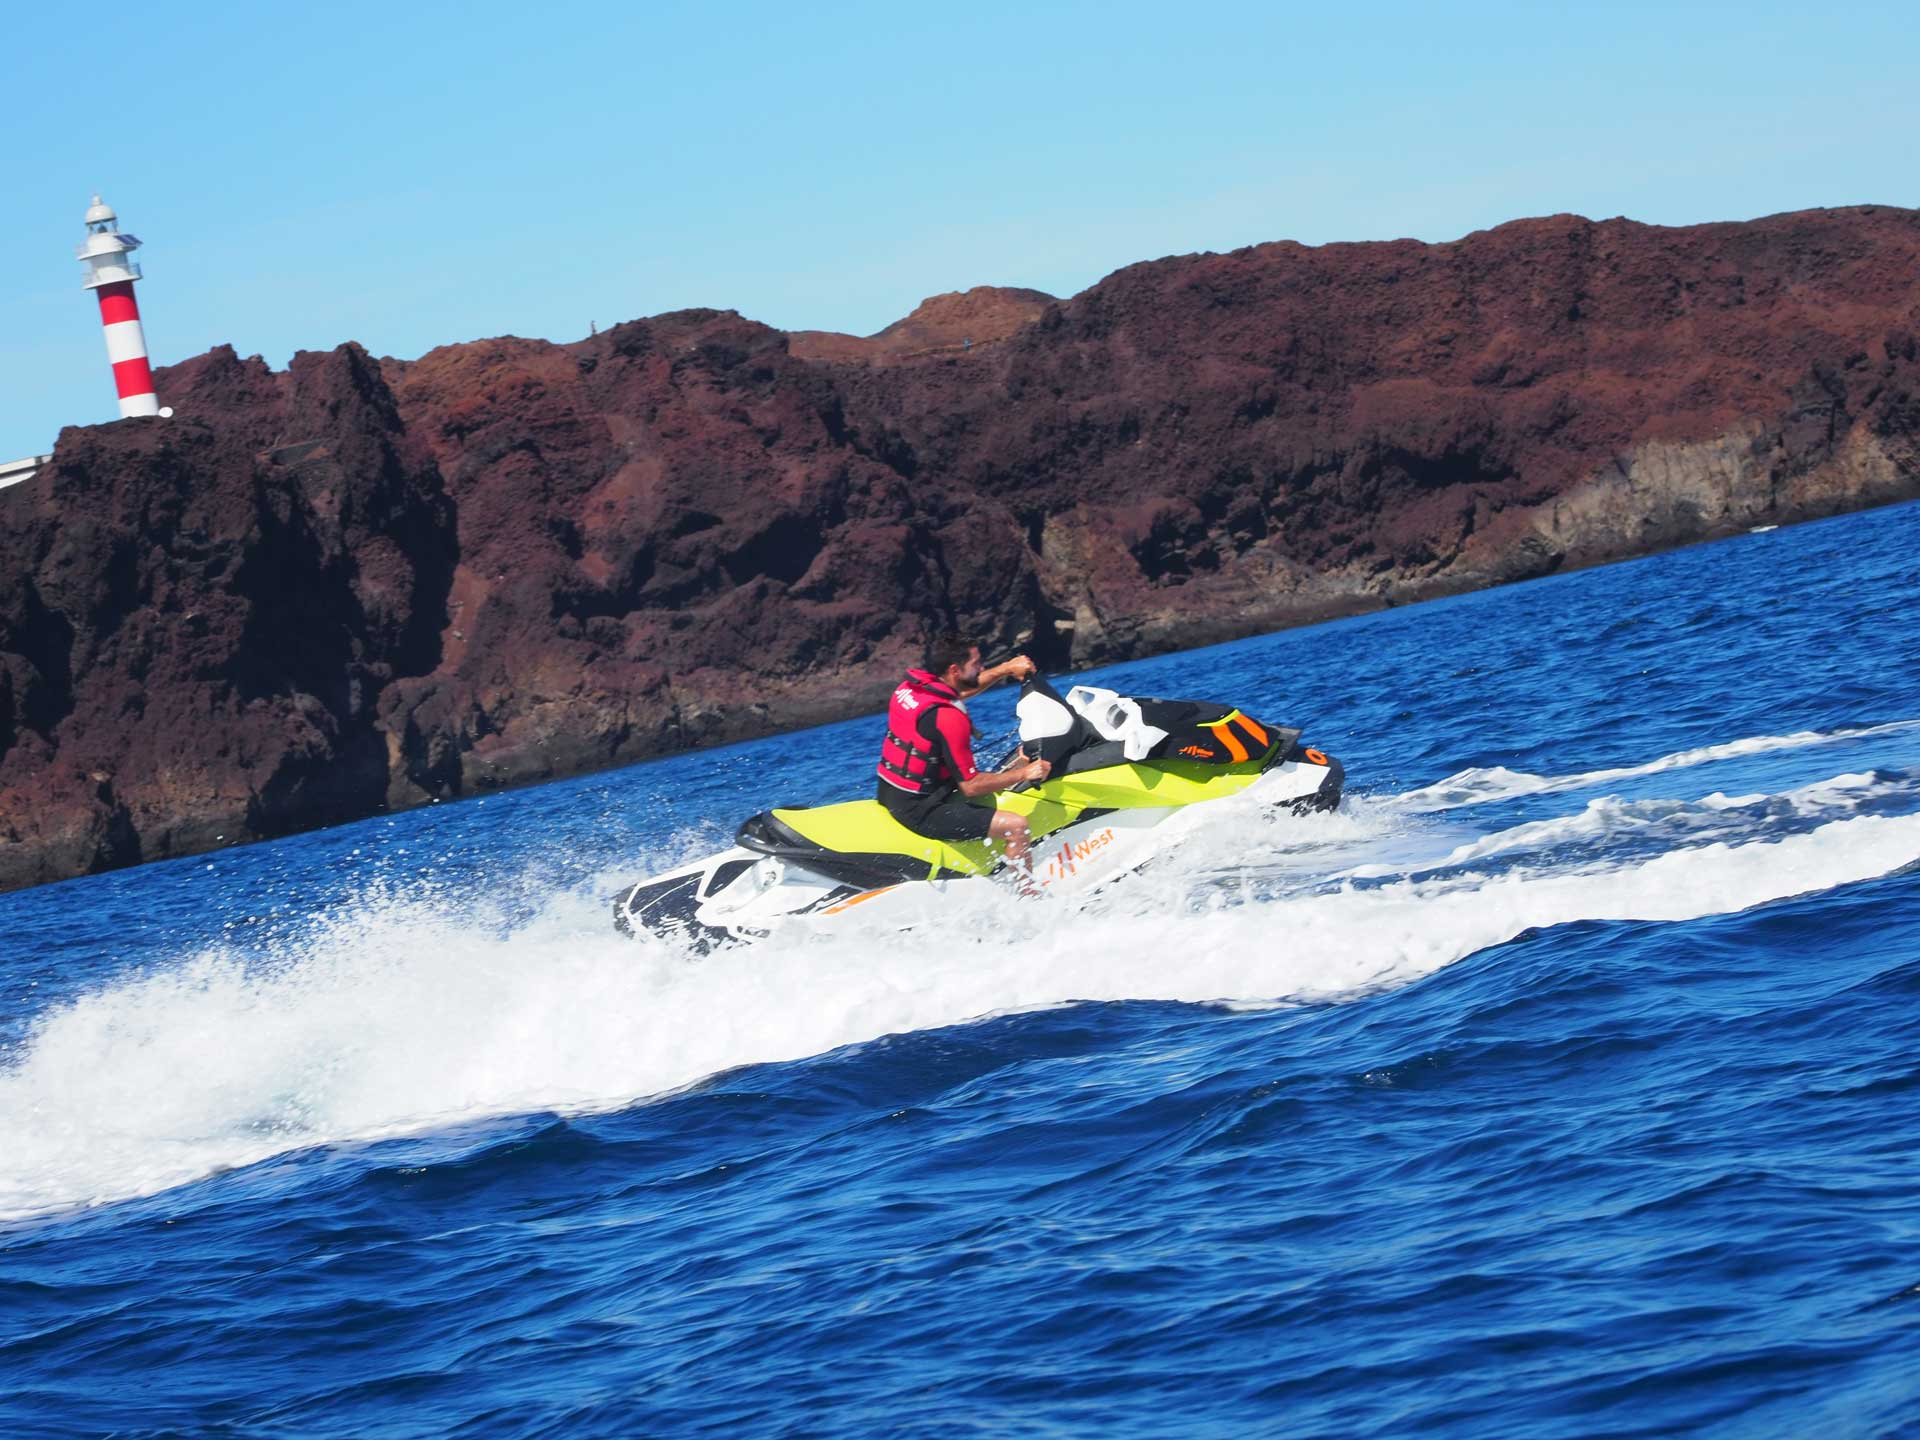 Is it safe to ride a jet ski?